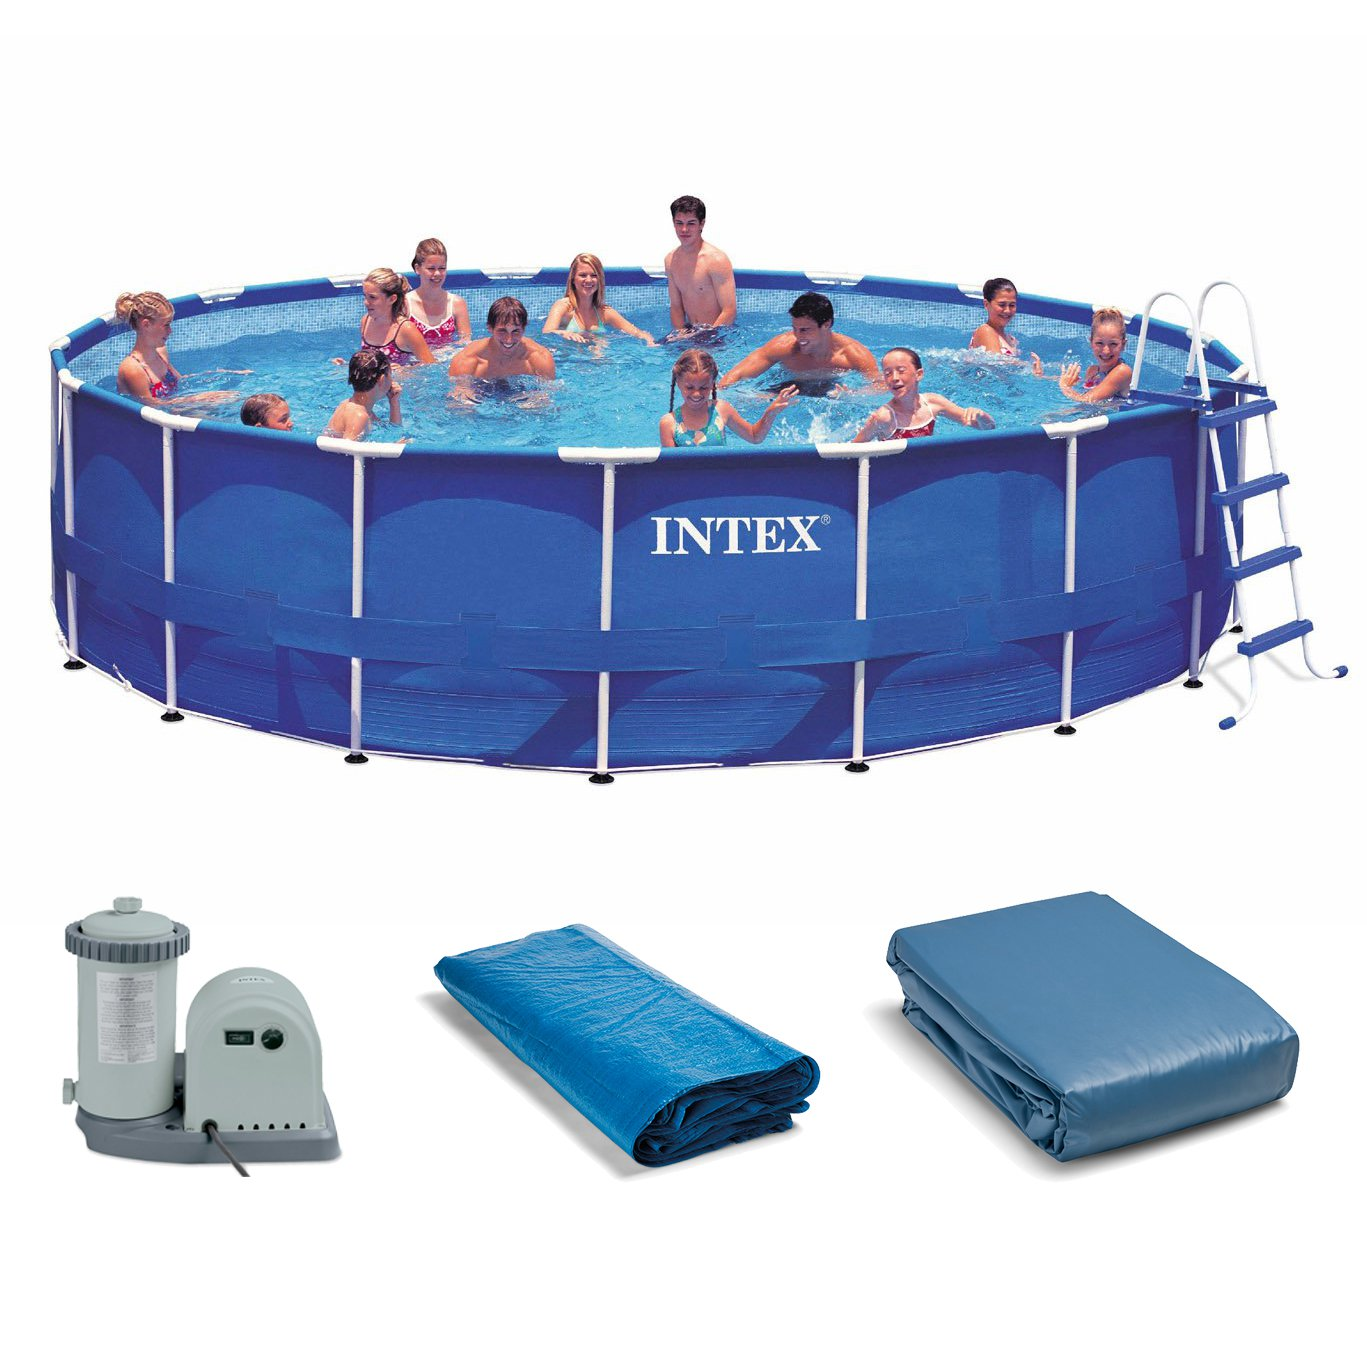 "Intex 18' x 48"" Metal Frame Above Ground Swimming Pool Set with 1500 GPH Pump by Intex"